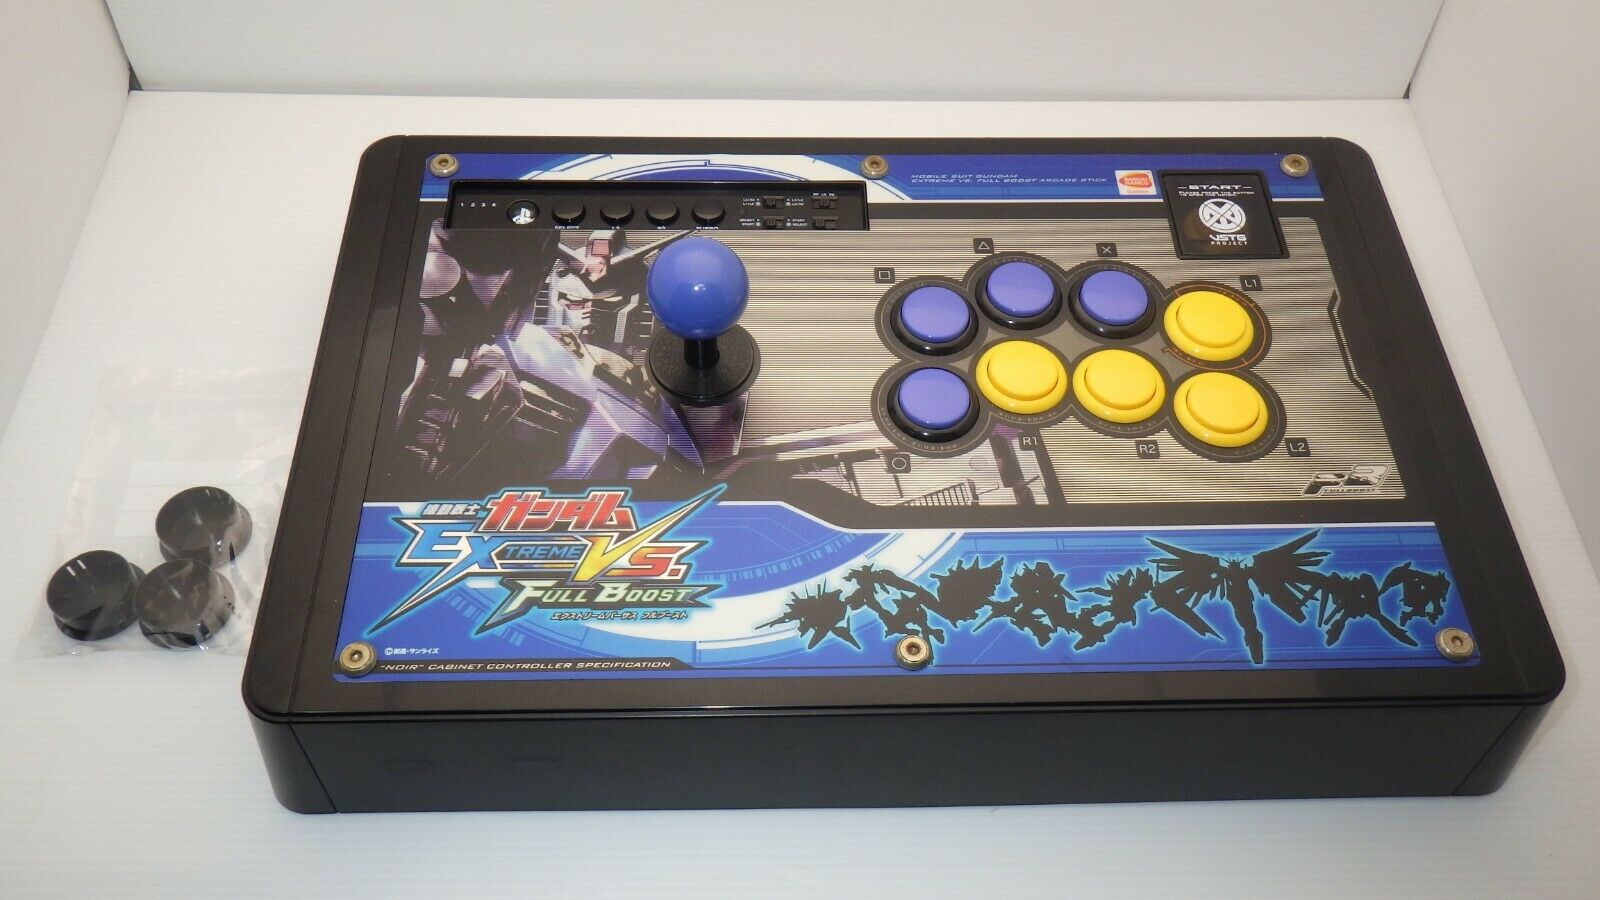 PlayStation3,4 PS3,4 Gundam Extreme VS. Full Boost Arcade Stick TESTED / 10988